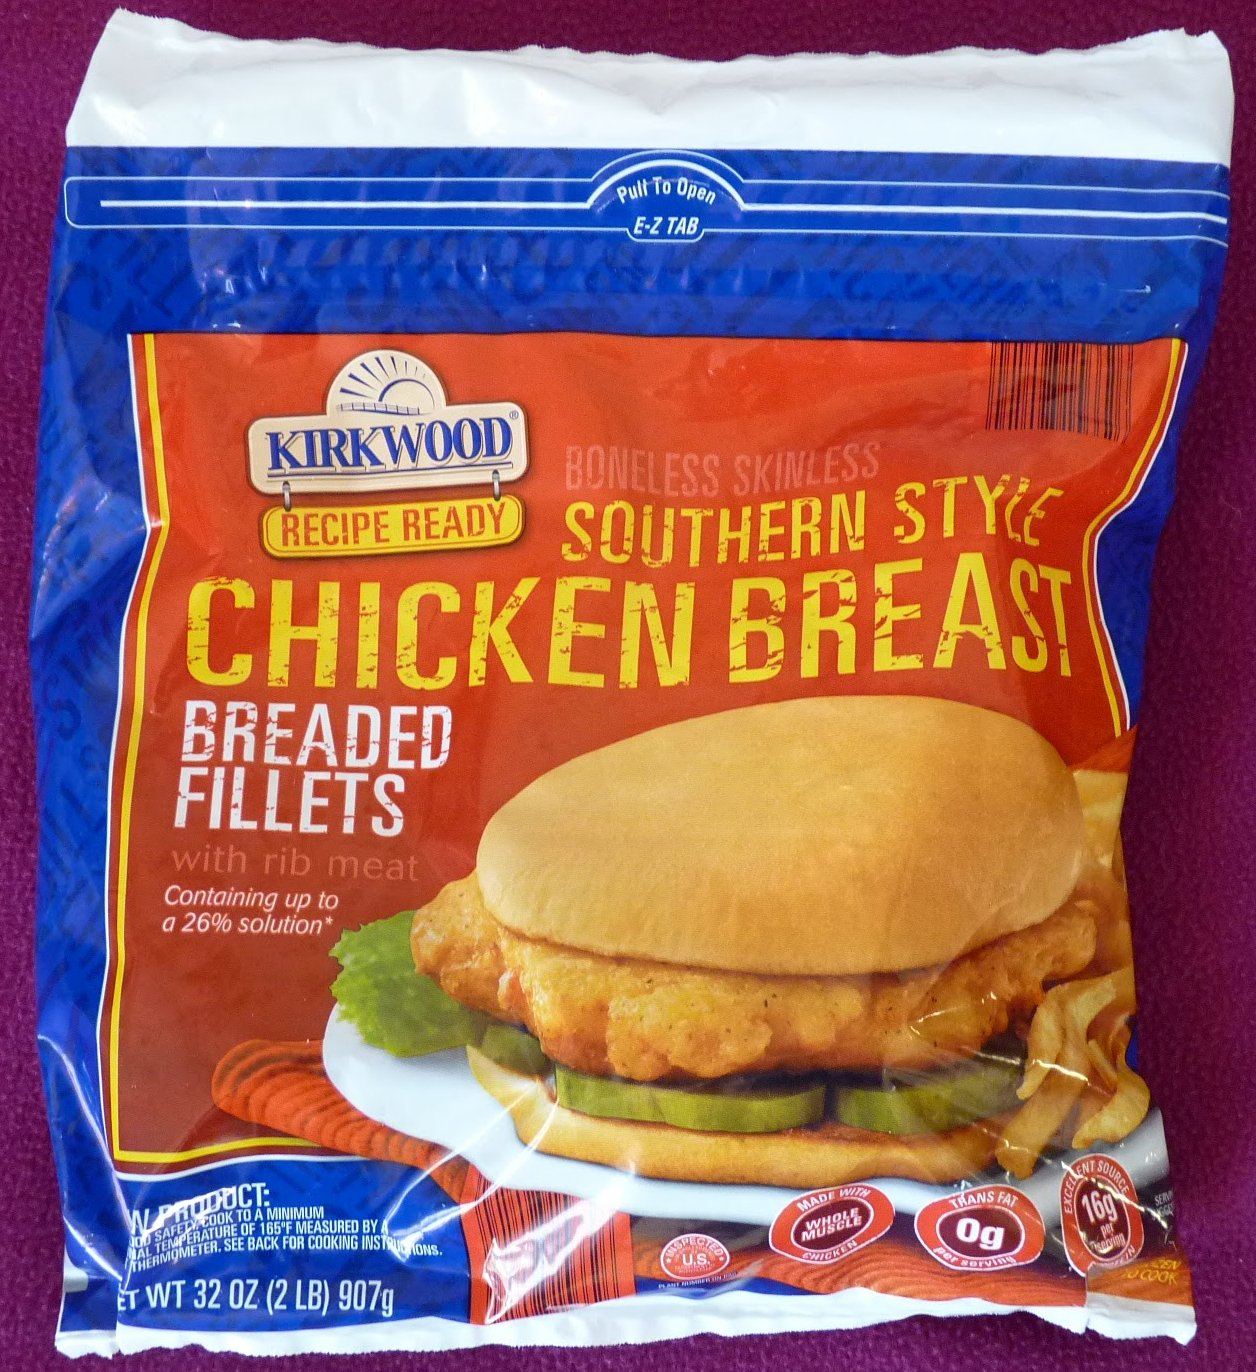 Kirkwood Southern Style Chicken Breast Breaded Fillets